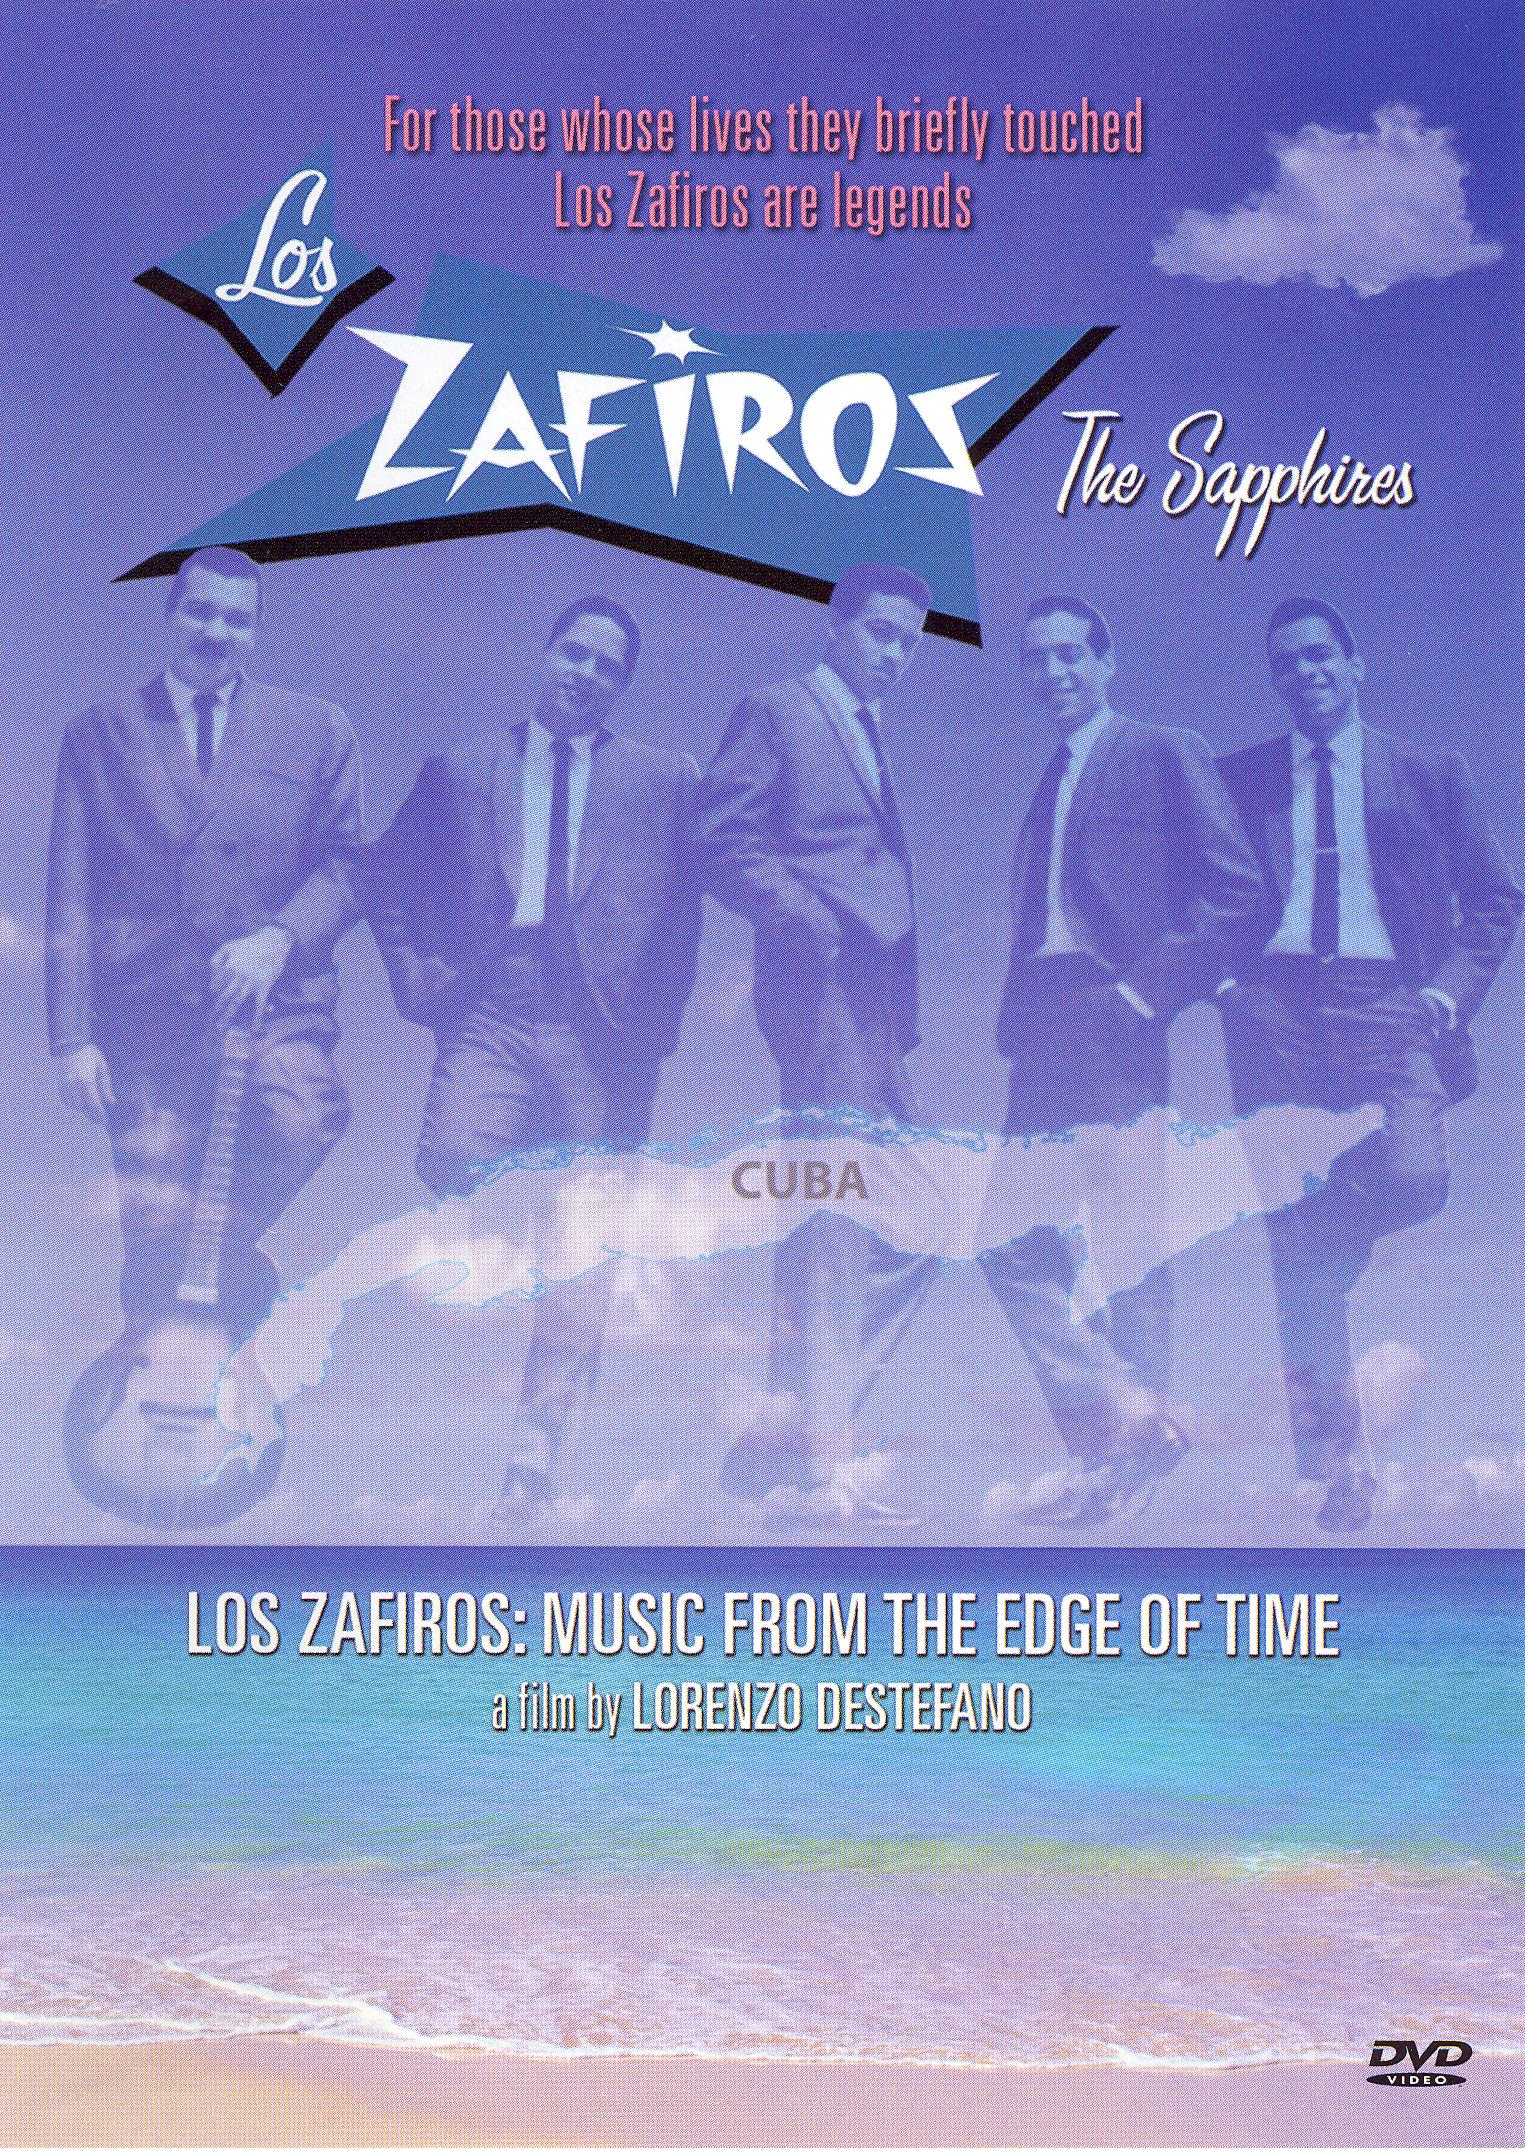 Los Zafiros/The Sapphires: Music From the Edge of Time